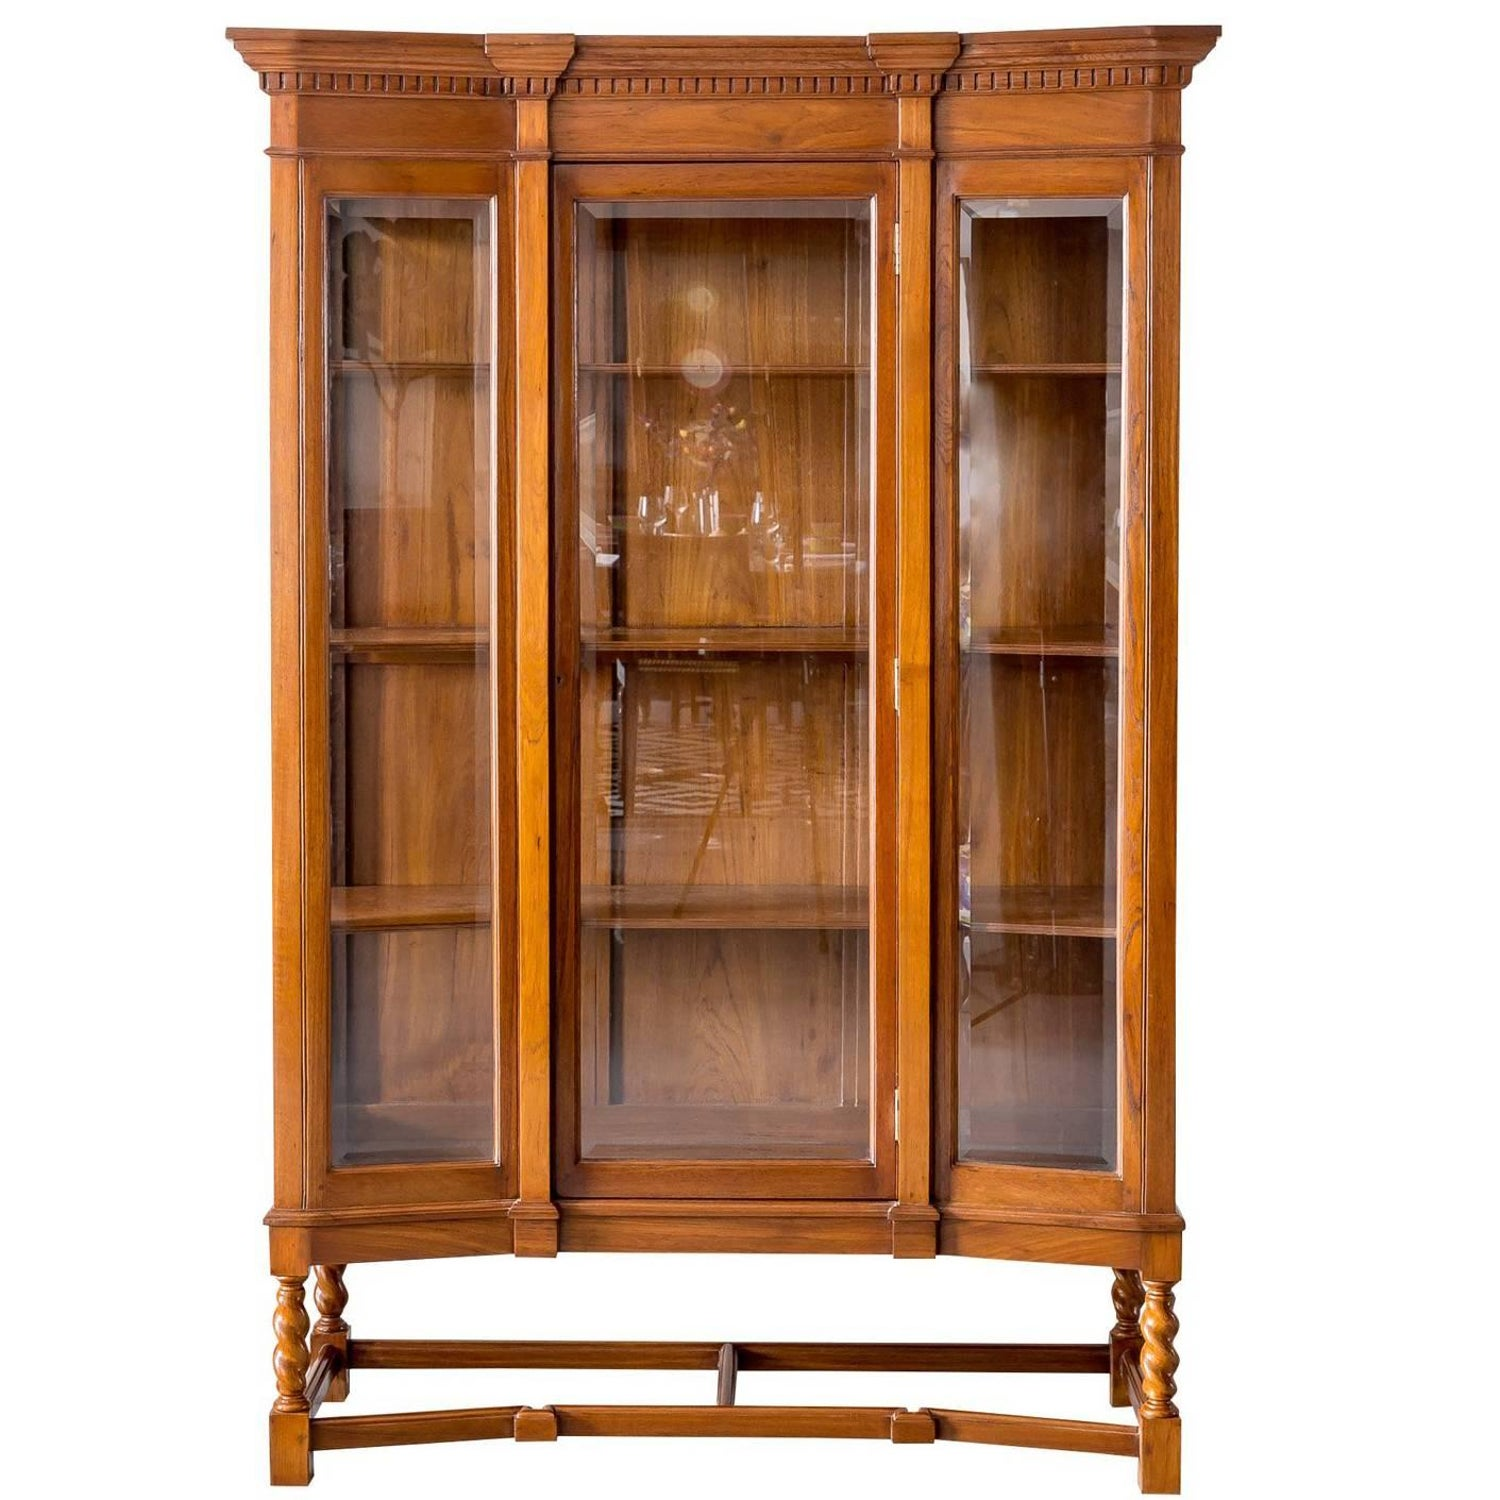 British Colonial Furniture - 393 For Sale at 1stdibs